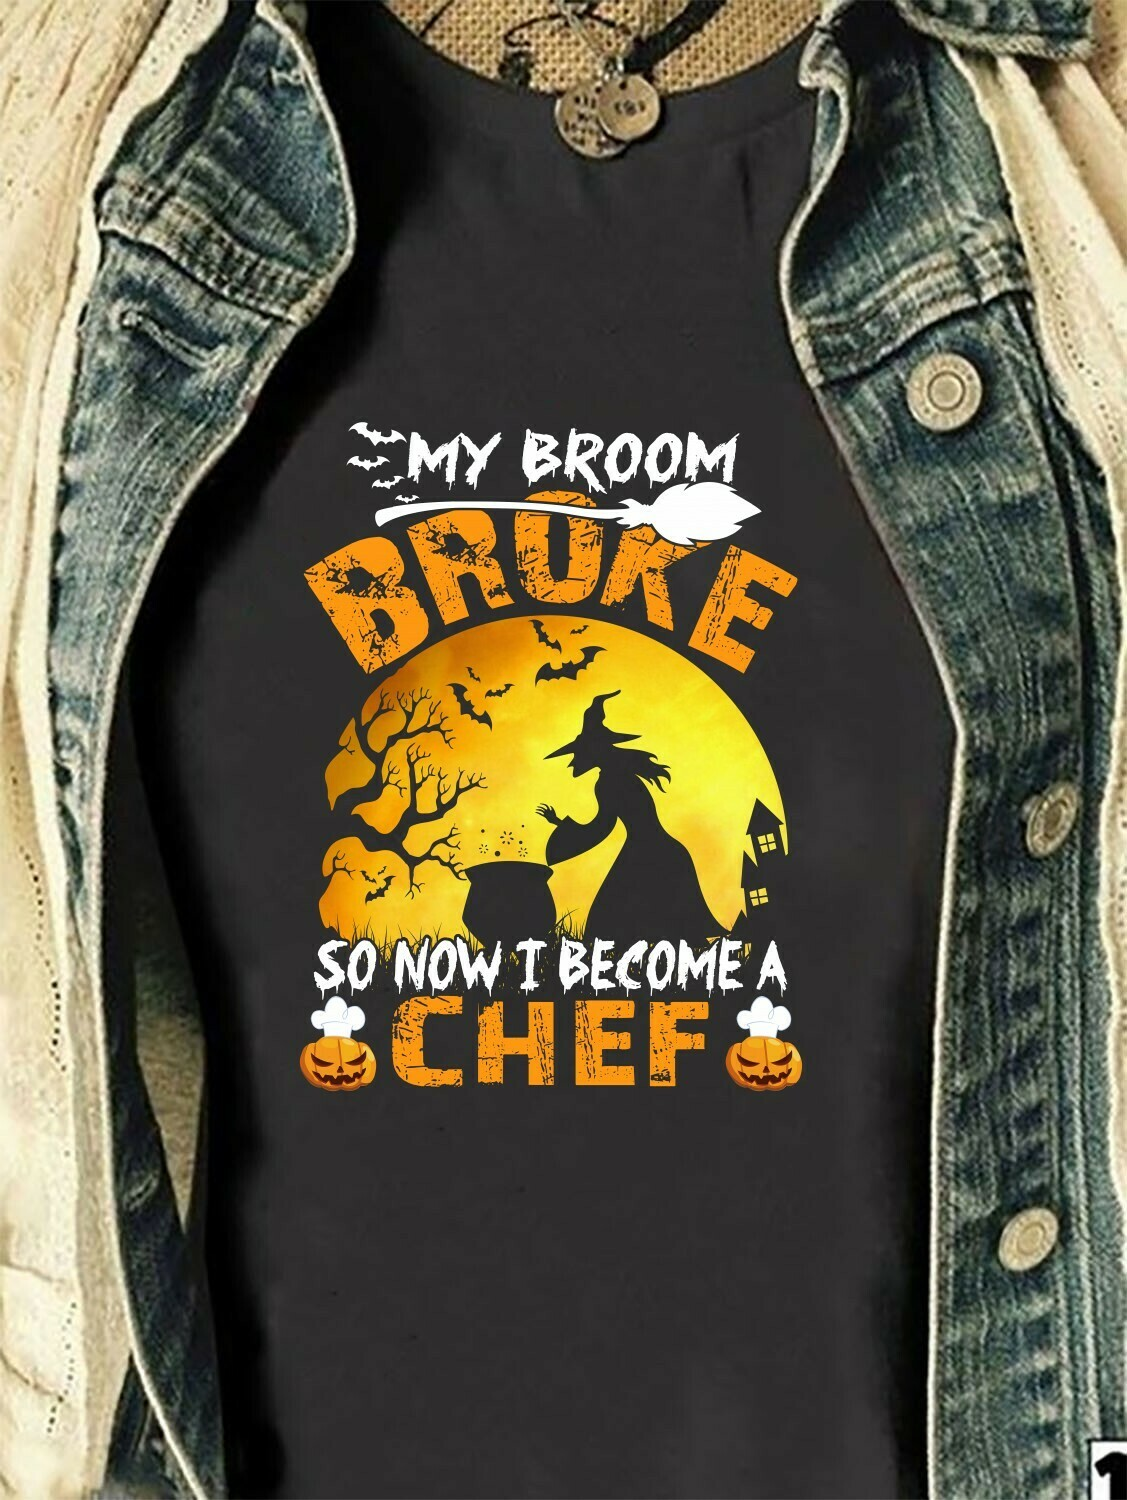 My Broom Broke So Now I Become A Chef - Witch Chef Not So Scary gift shirt for Halloween day Long Sleeve Sweatshirt Hoodie Jolly Family Gifts